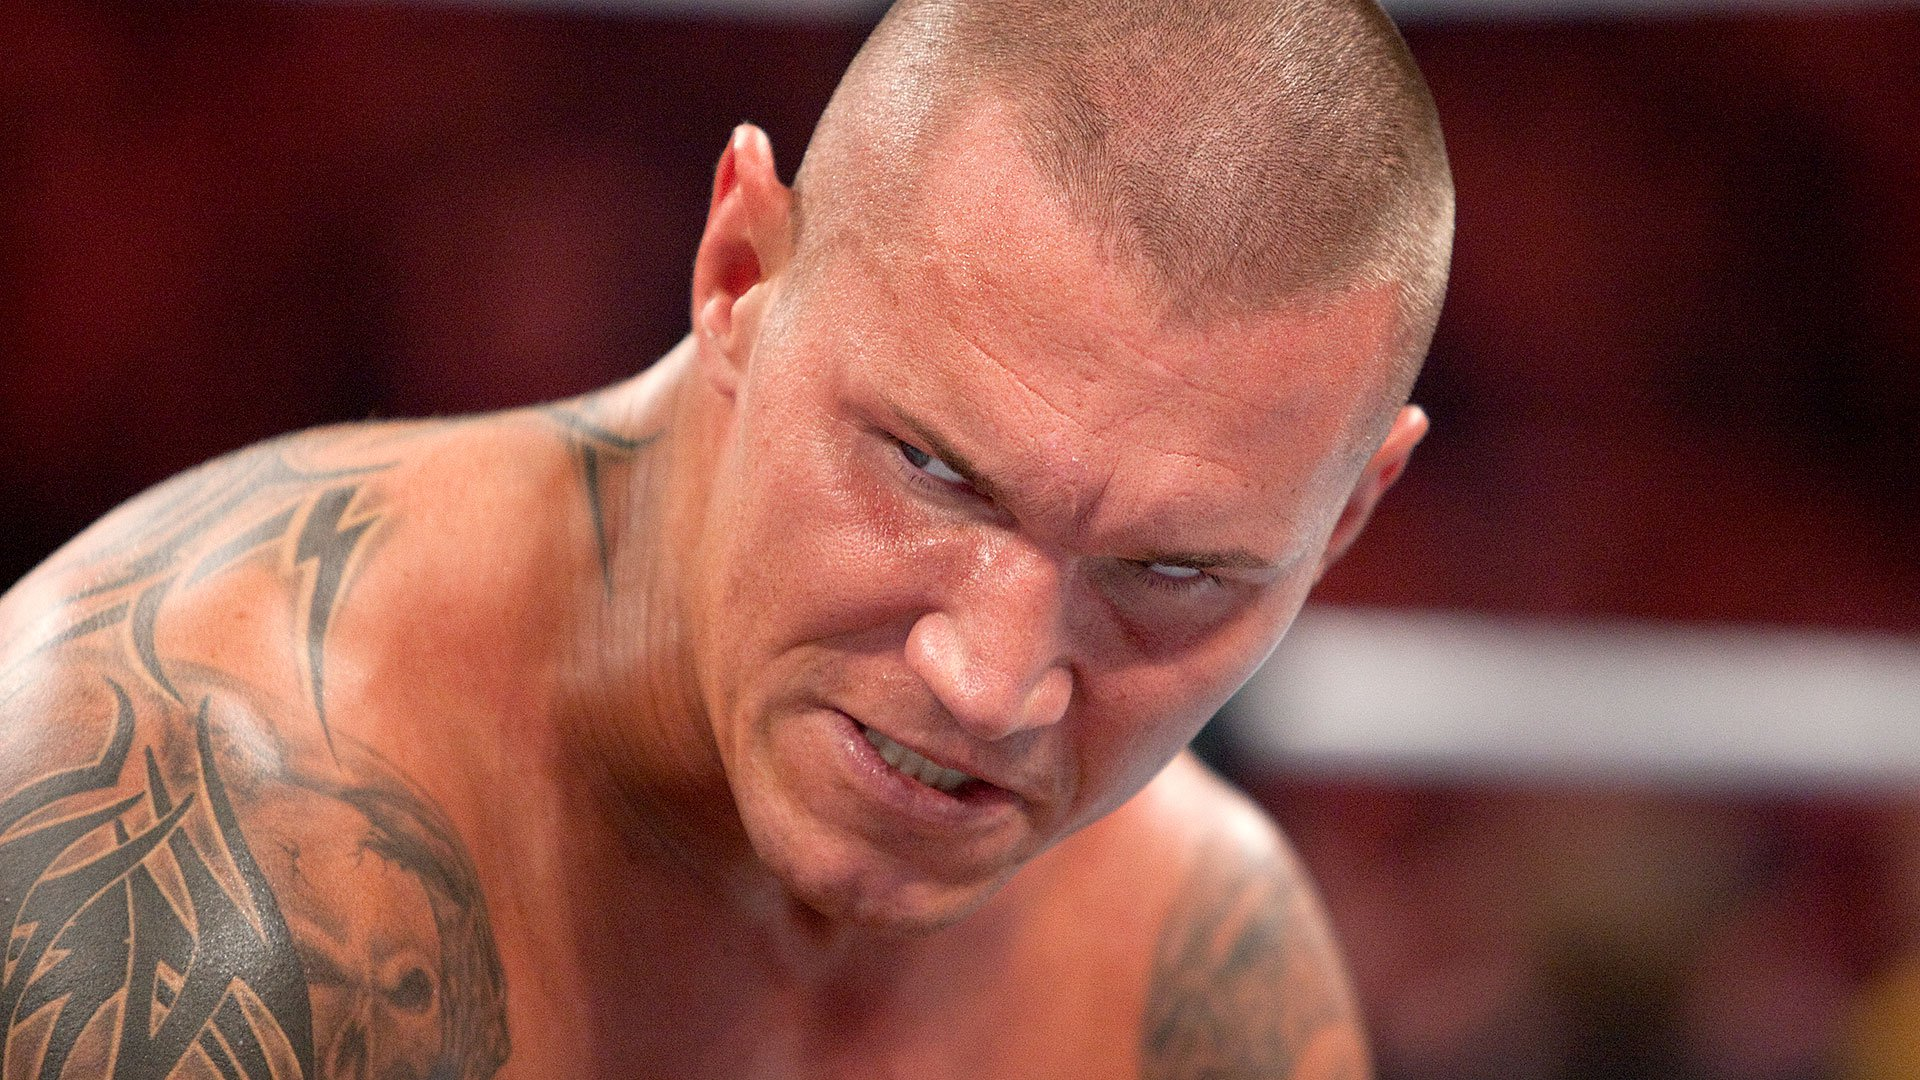 African small face of randy orton tamil nadu